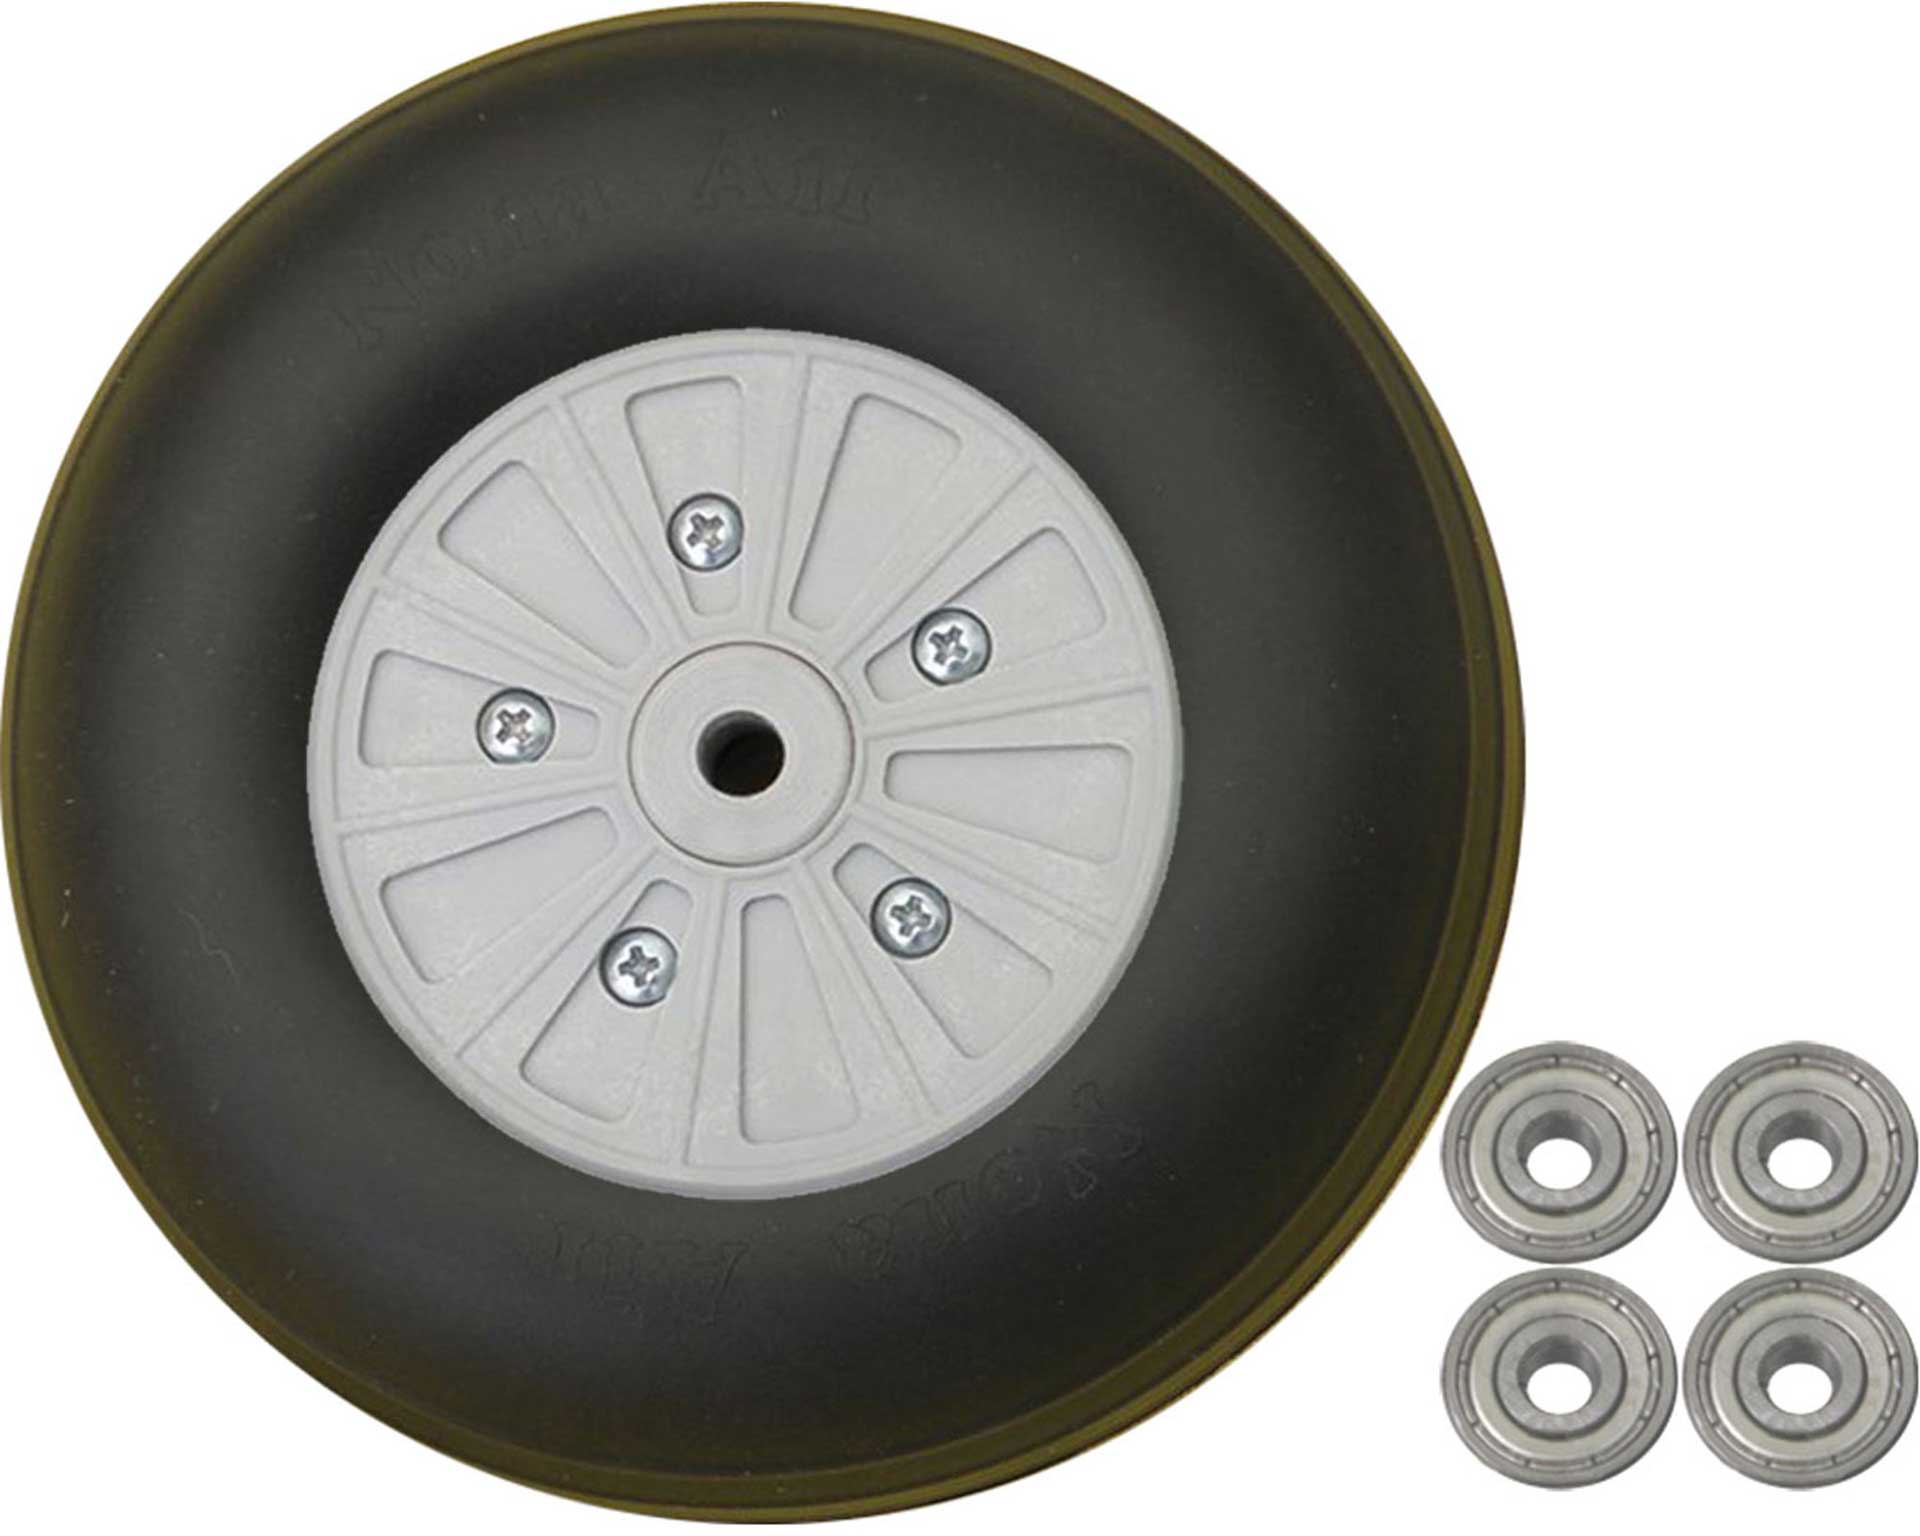 PLANET-HOBBY WHEELS HEAVY DUTY 125MM 2 PCS. WITH BALL BEARINGS